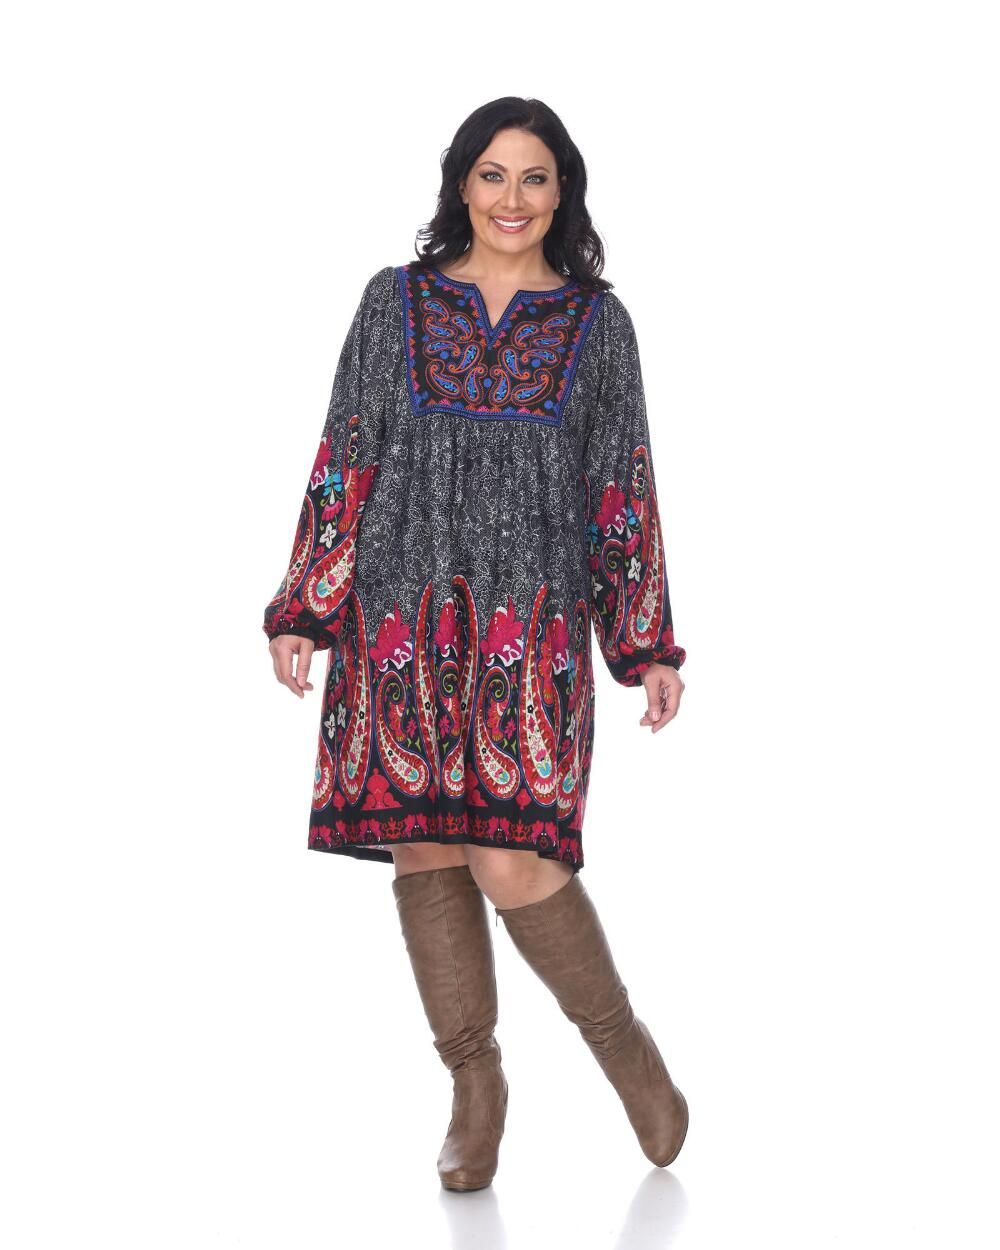 Women S Plus Size Apolline Embroidered Sweater Dress Plus Size Dresses Stein Mart Sweater Dress Dress With Sneakers Embroidered Sweater [ 1250 x 1000 Pixel ]